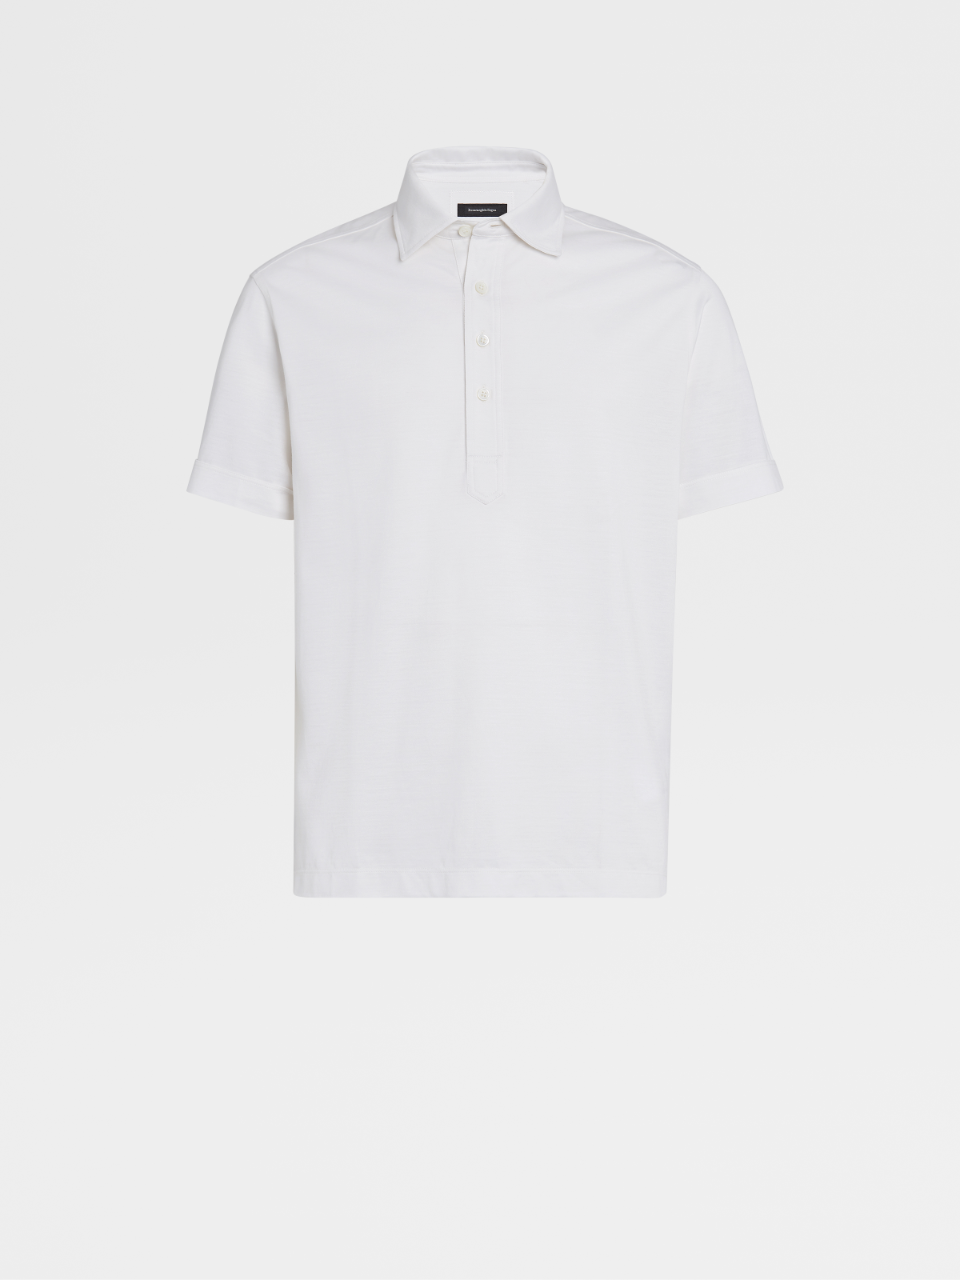 Leggerissimo Short-Sleeve Polo